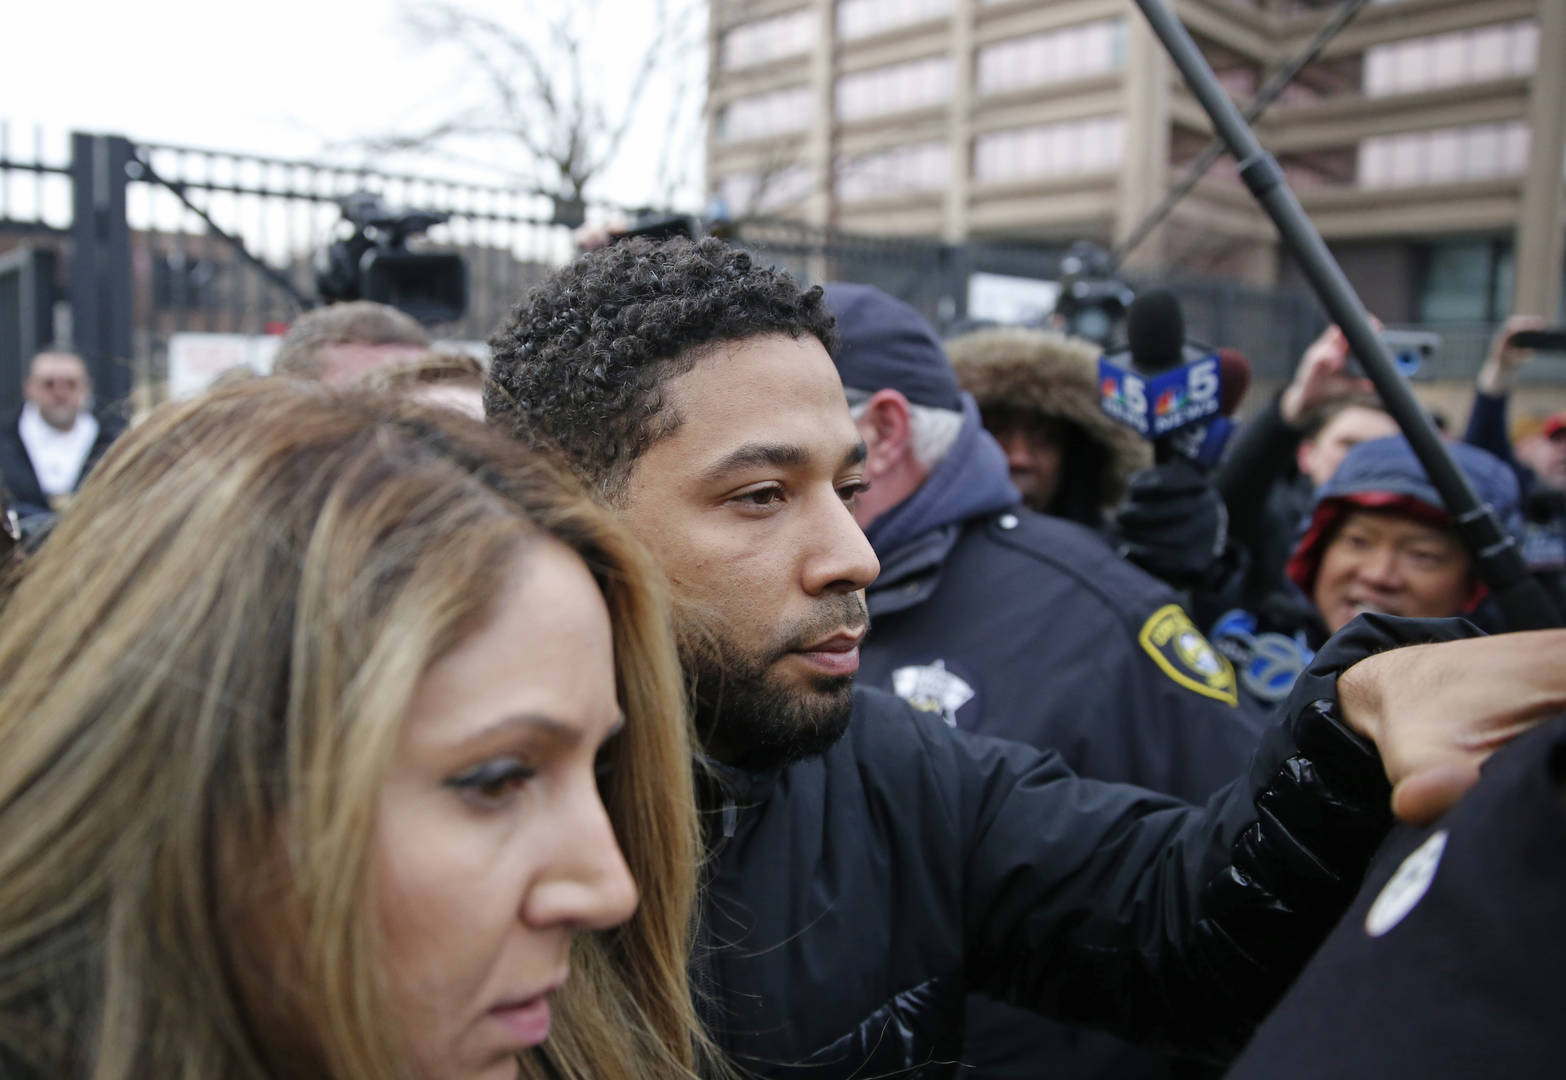 Deal was in works with Jussie Smollett before charges dropped, documents show